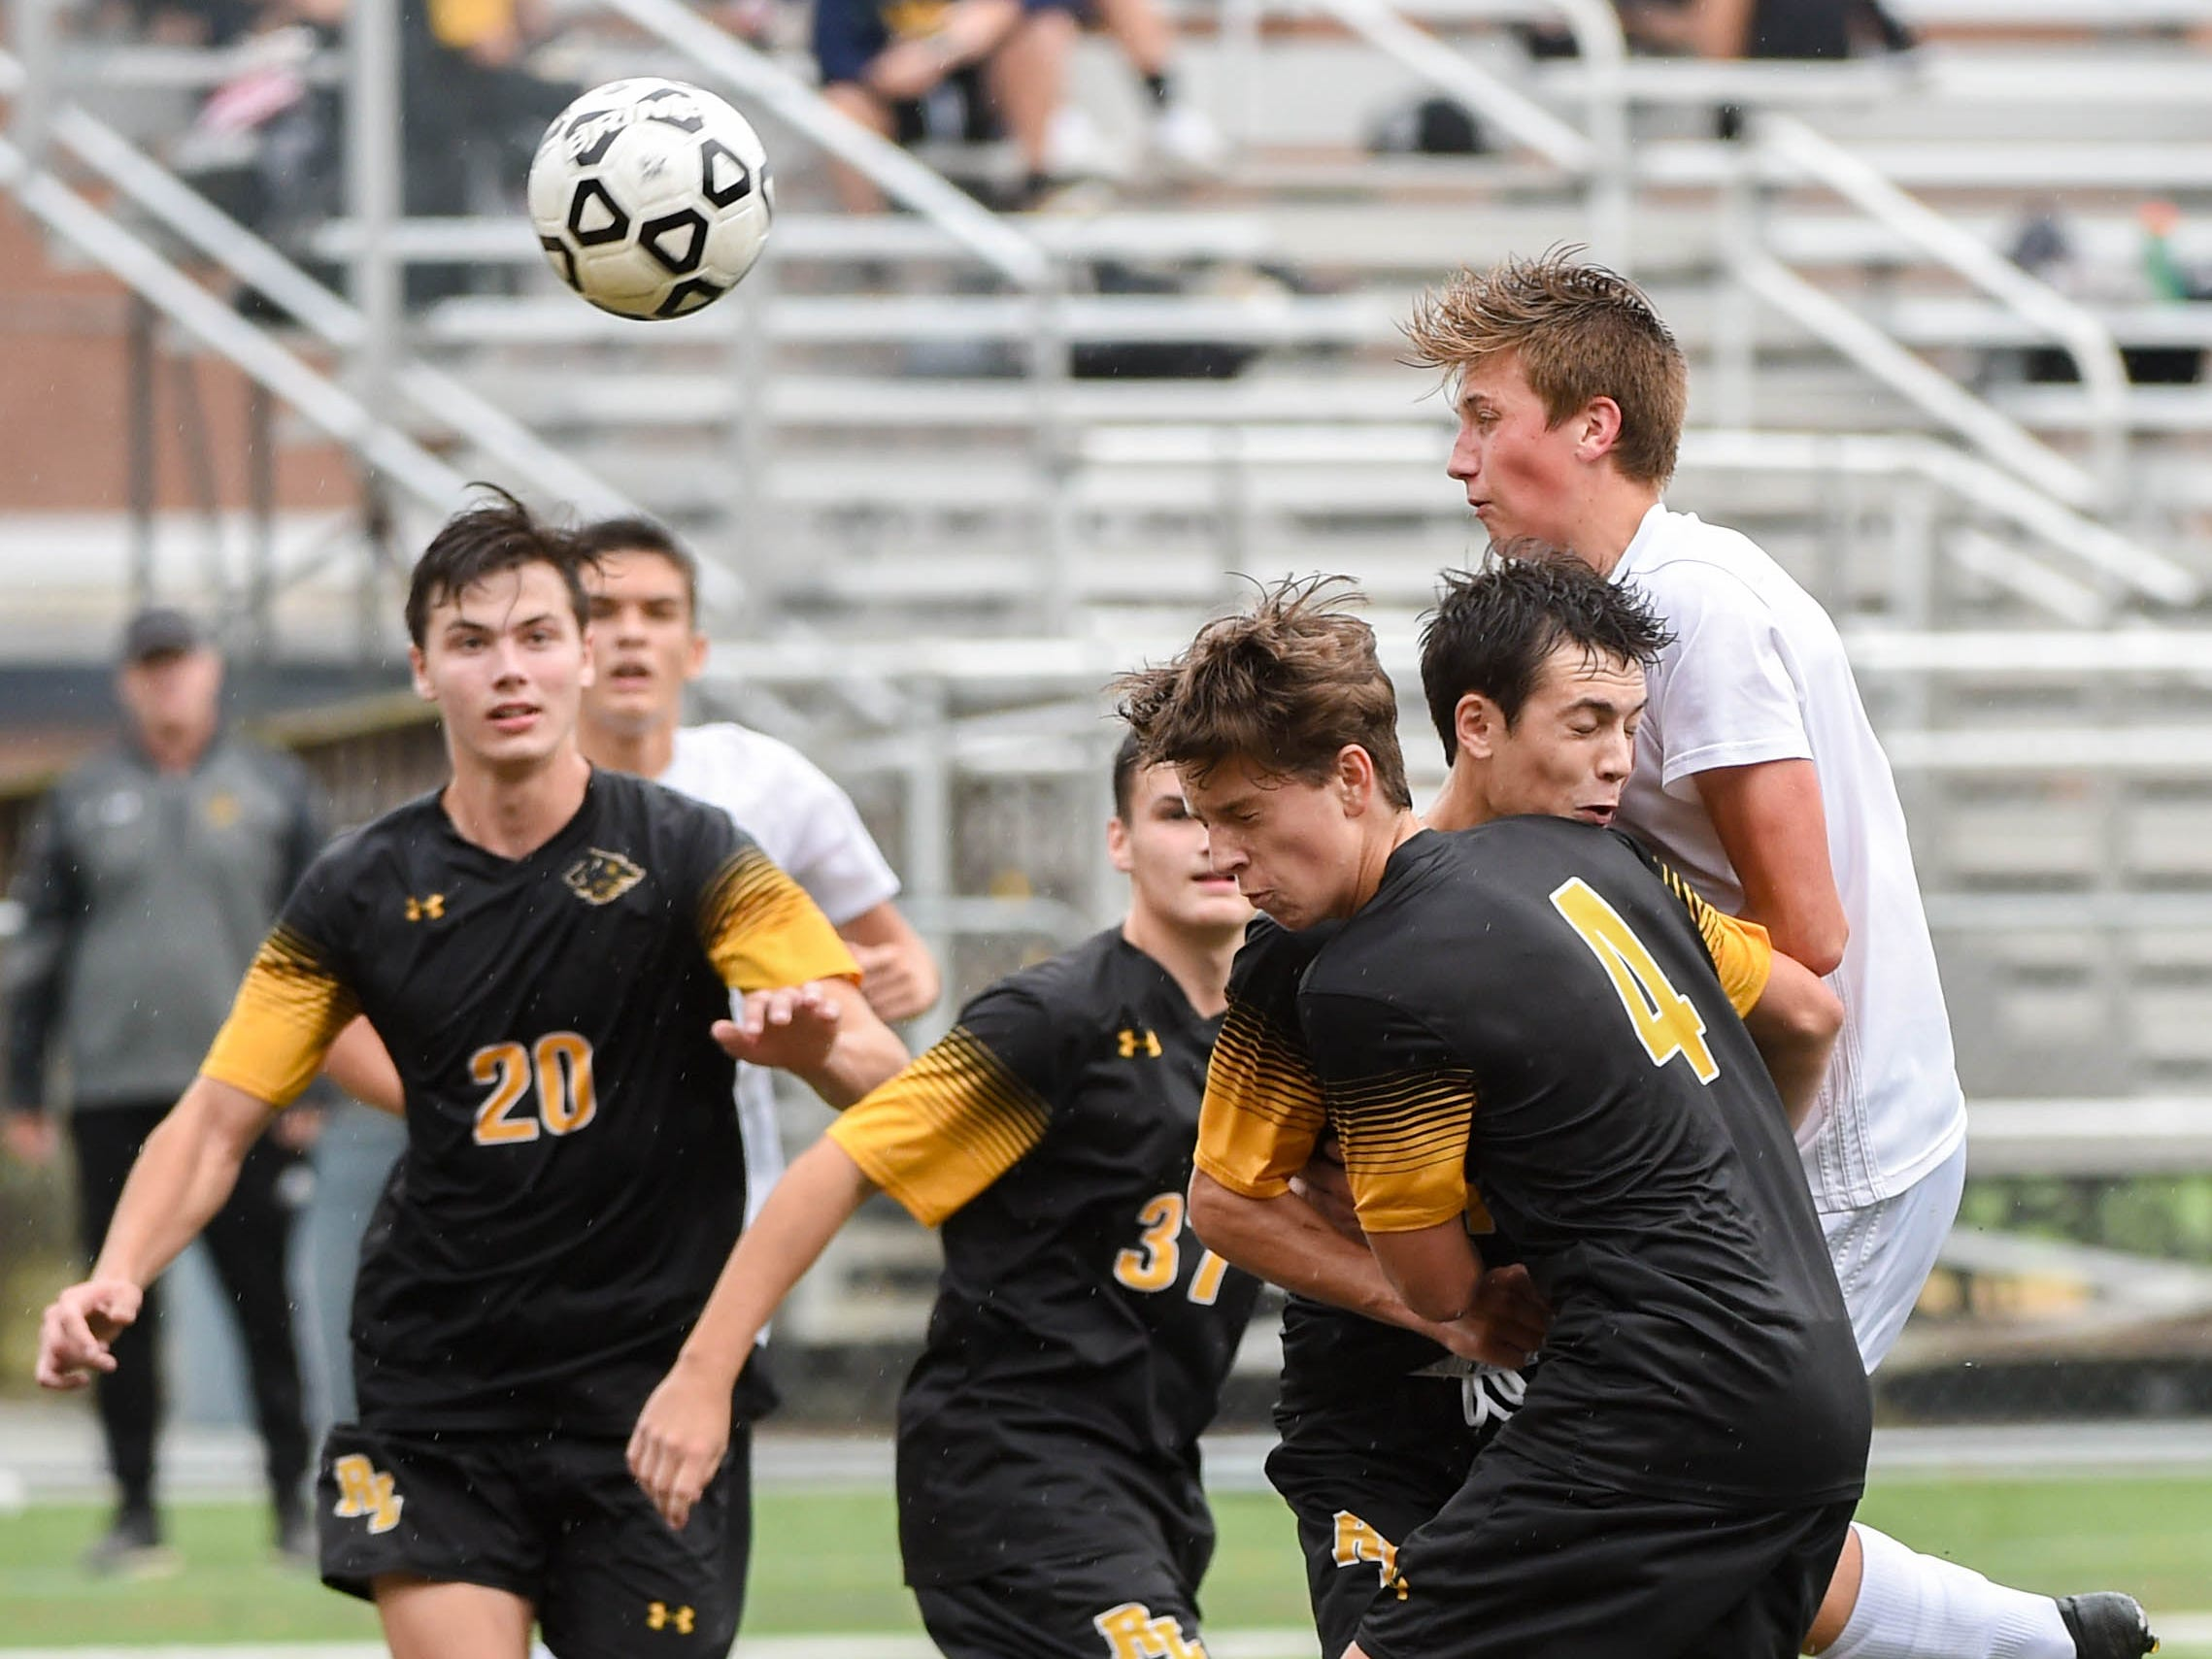 The Panthers head one to goal during their game against Red Lion, September 11, 2018.